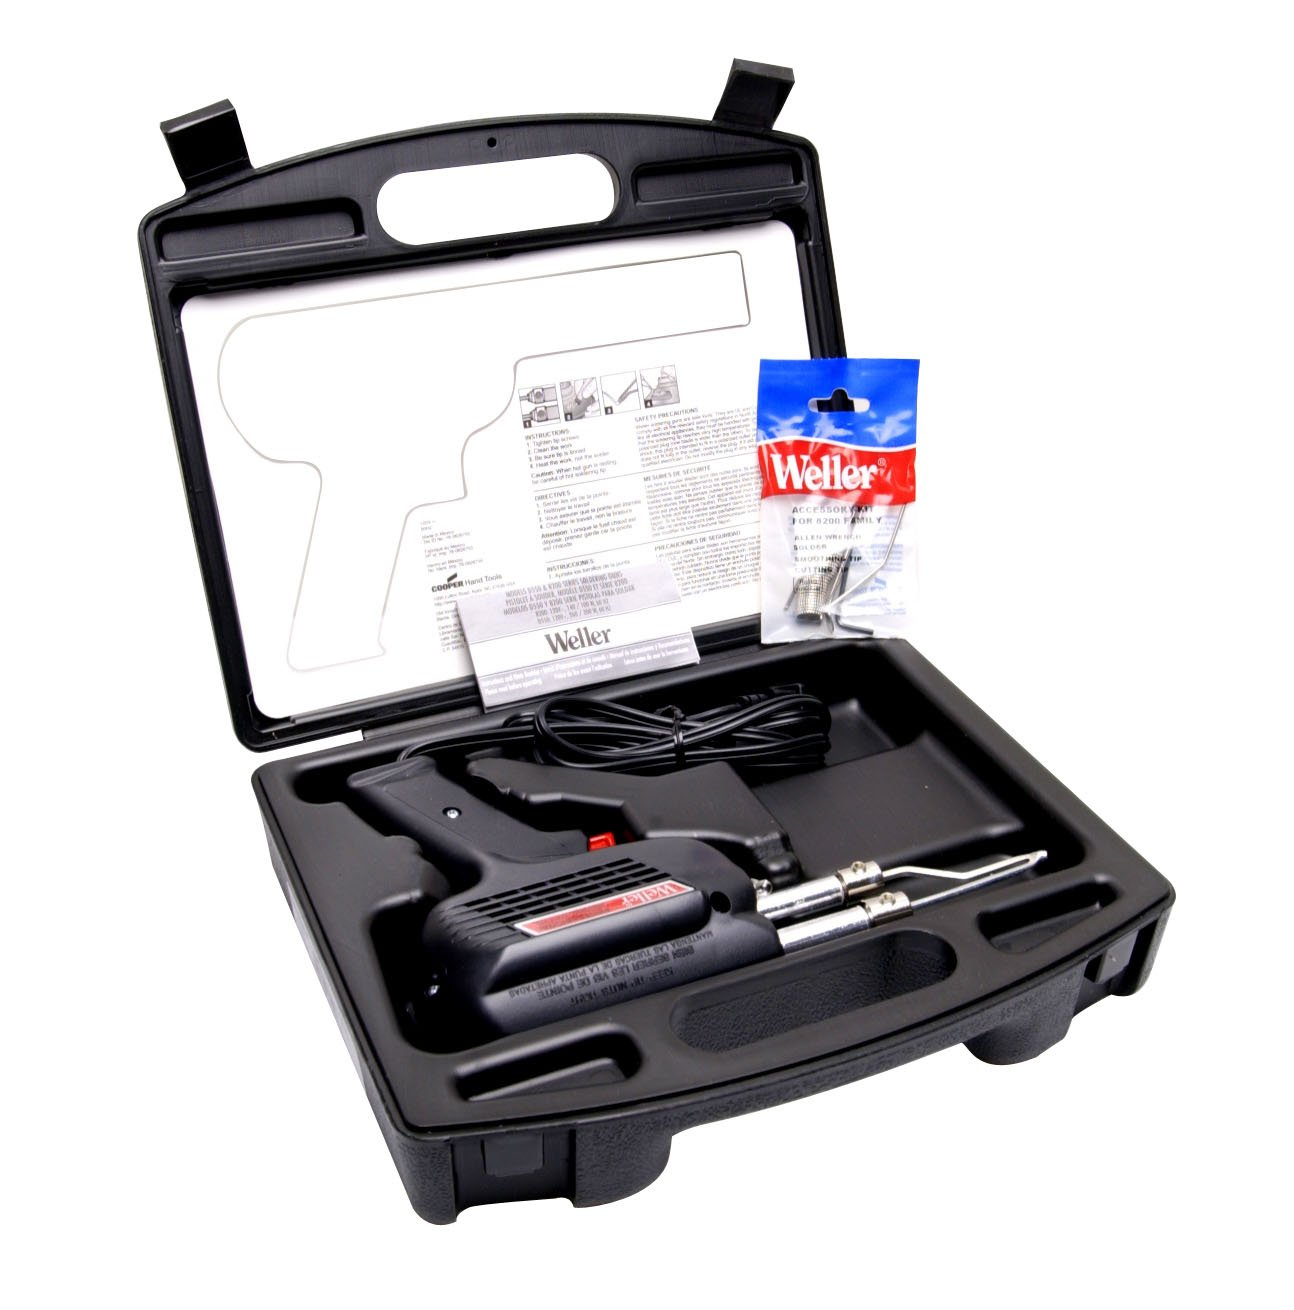 Weller D550PK 260-Watt/200W Professional Soldering Gun Kit with Three Tips and Solder in Carrying Case by Weller